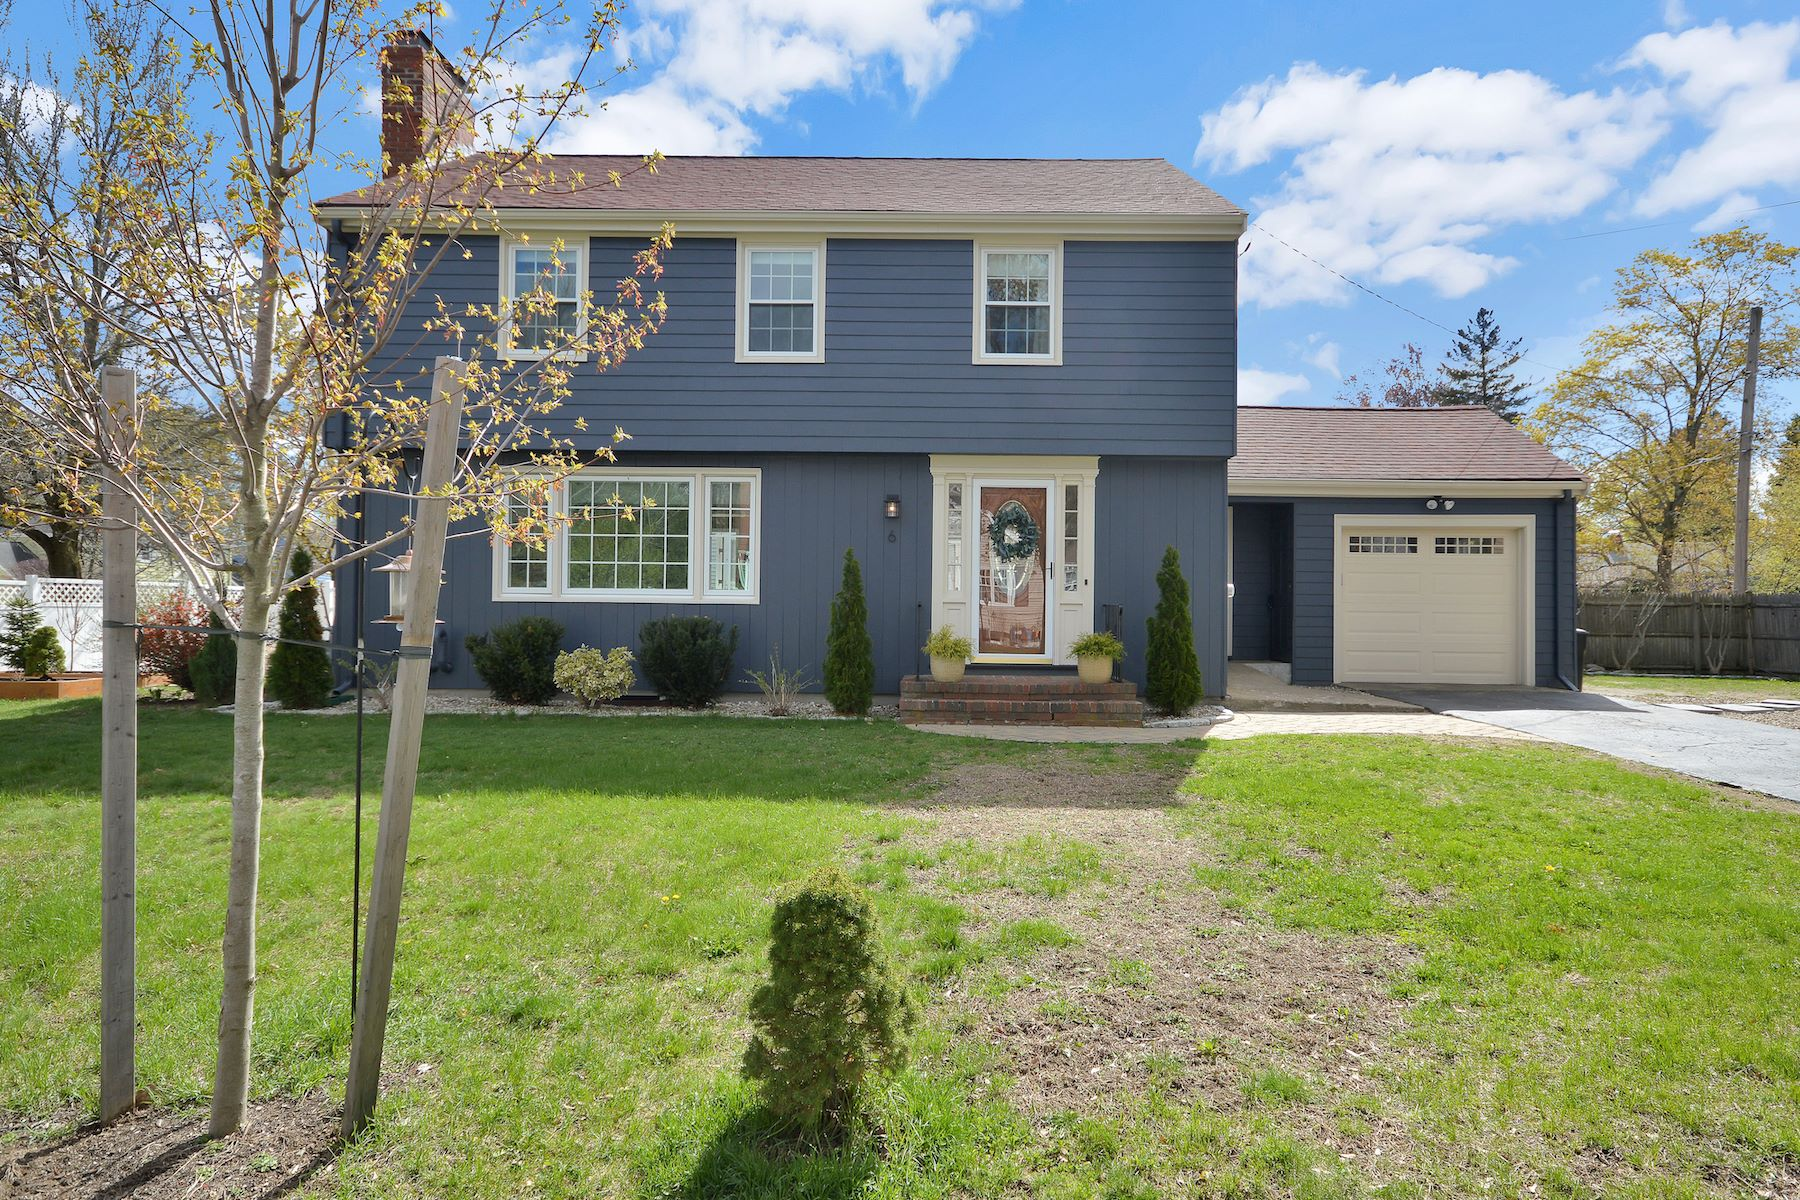 Single Family Home for Active at 6 Stowecroft Road 6 Stowecroft Melrose, Massachusetts 02176 United States